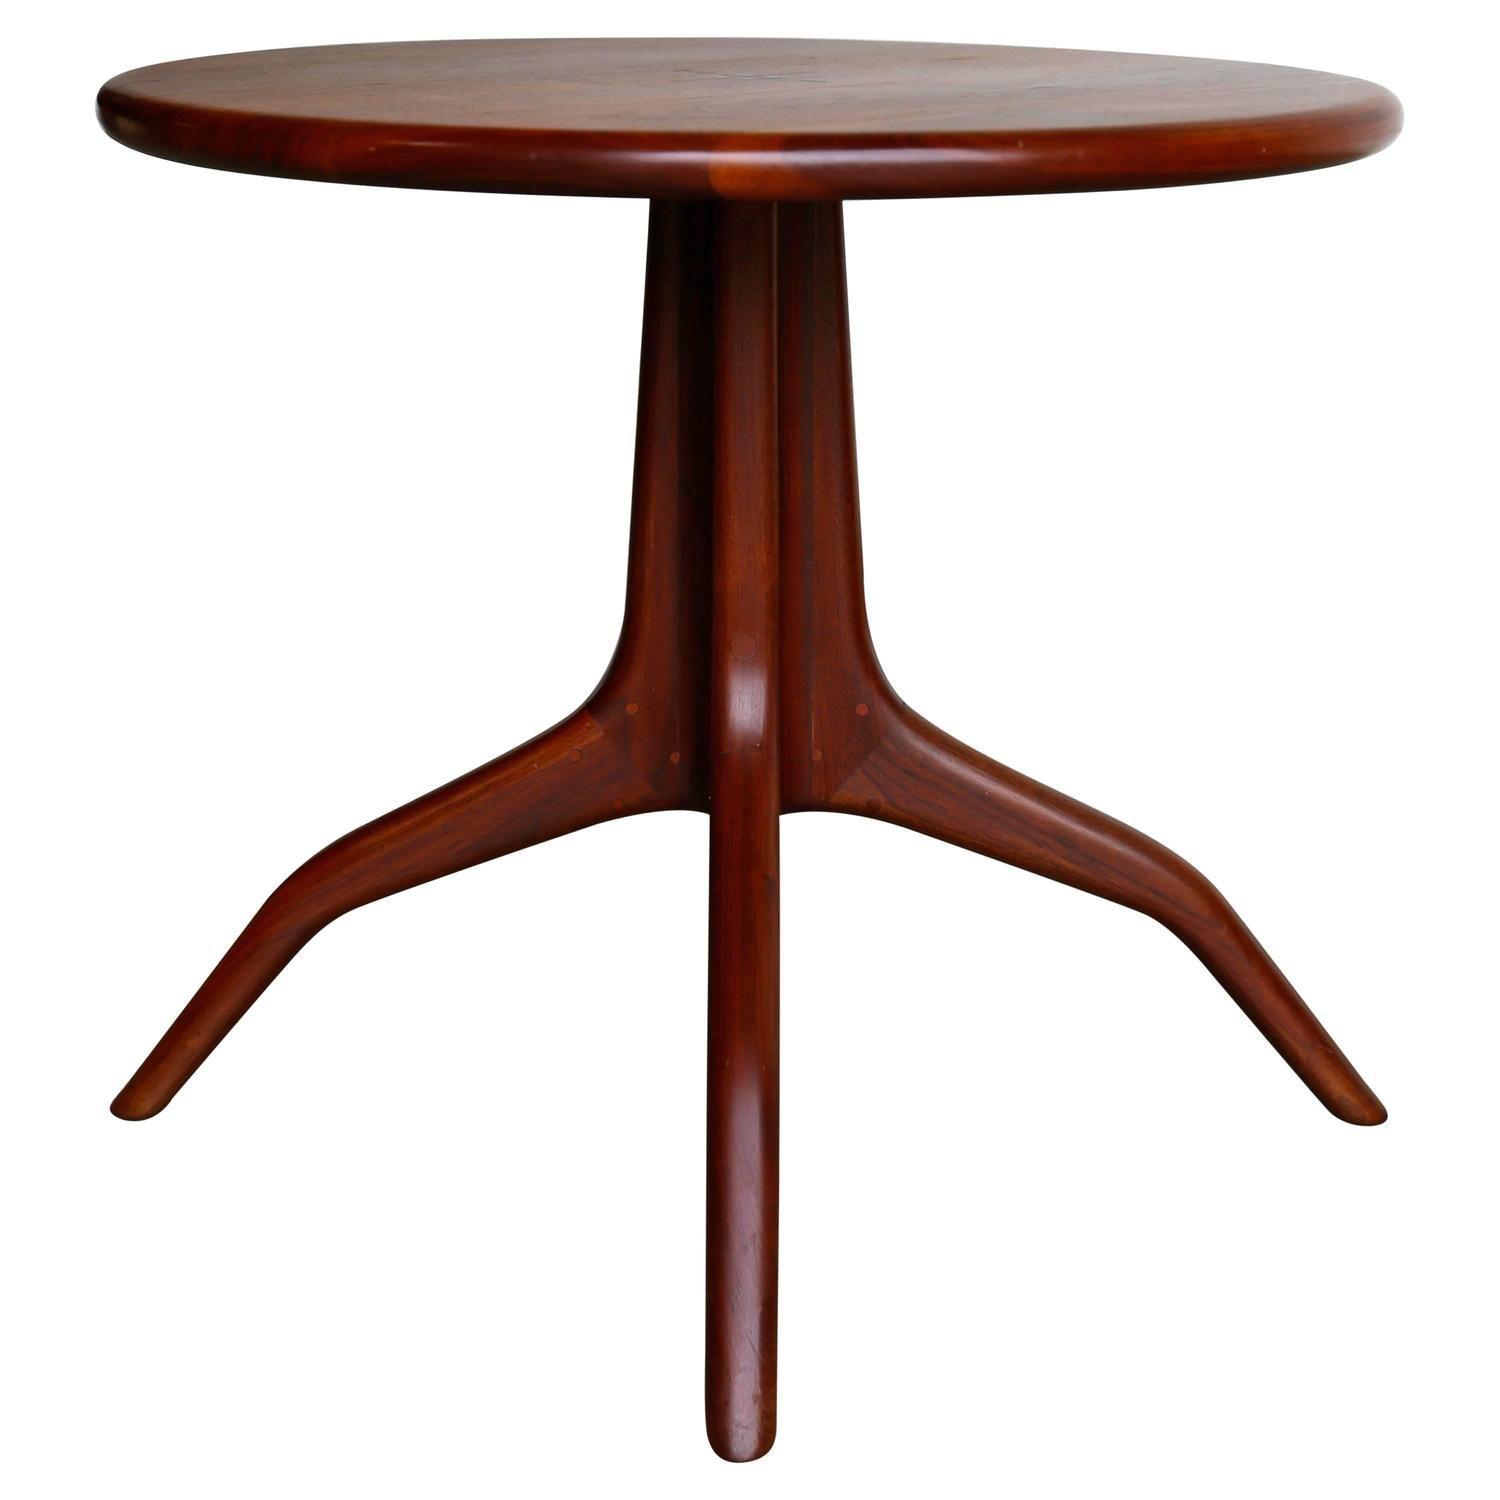 Sculptural Side Table by Sam Maloof | Sam maloof, Tables ...